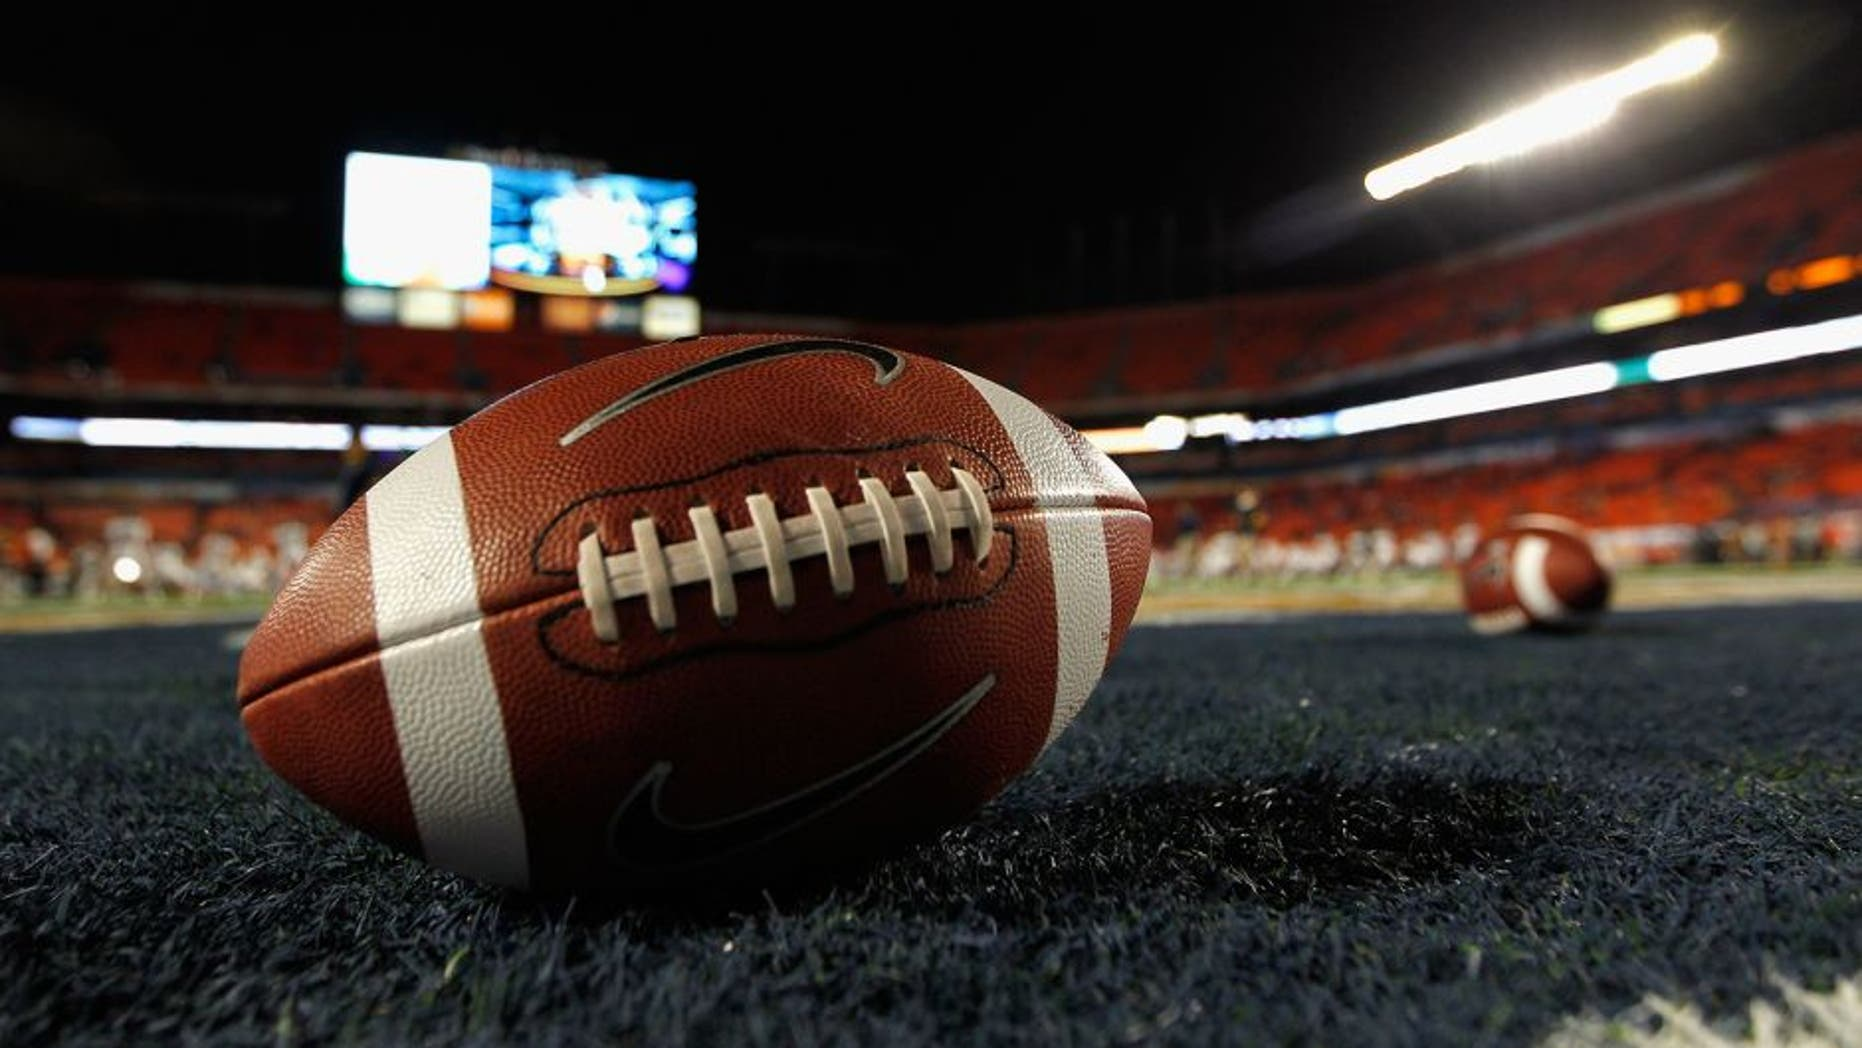 MIAMI GARDENS, FL - JANUARY 04: A detail of a Nike official NCAA size football as it sits in the end zone while the West Virginia Mountaineers stretchon the field prior to playing against the Clemson Tigers during the Discover Orange Bowl at Sun Life Stadium on January 4, 2012 in Miami Gardens, Florida. (Photo by Streeter Lecka/Getty Images)